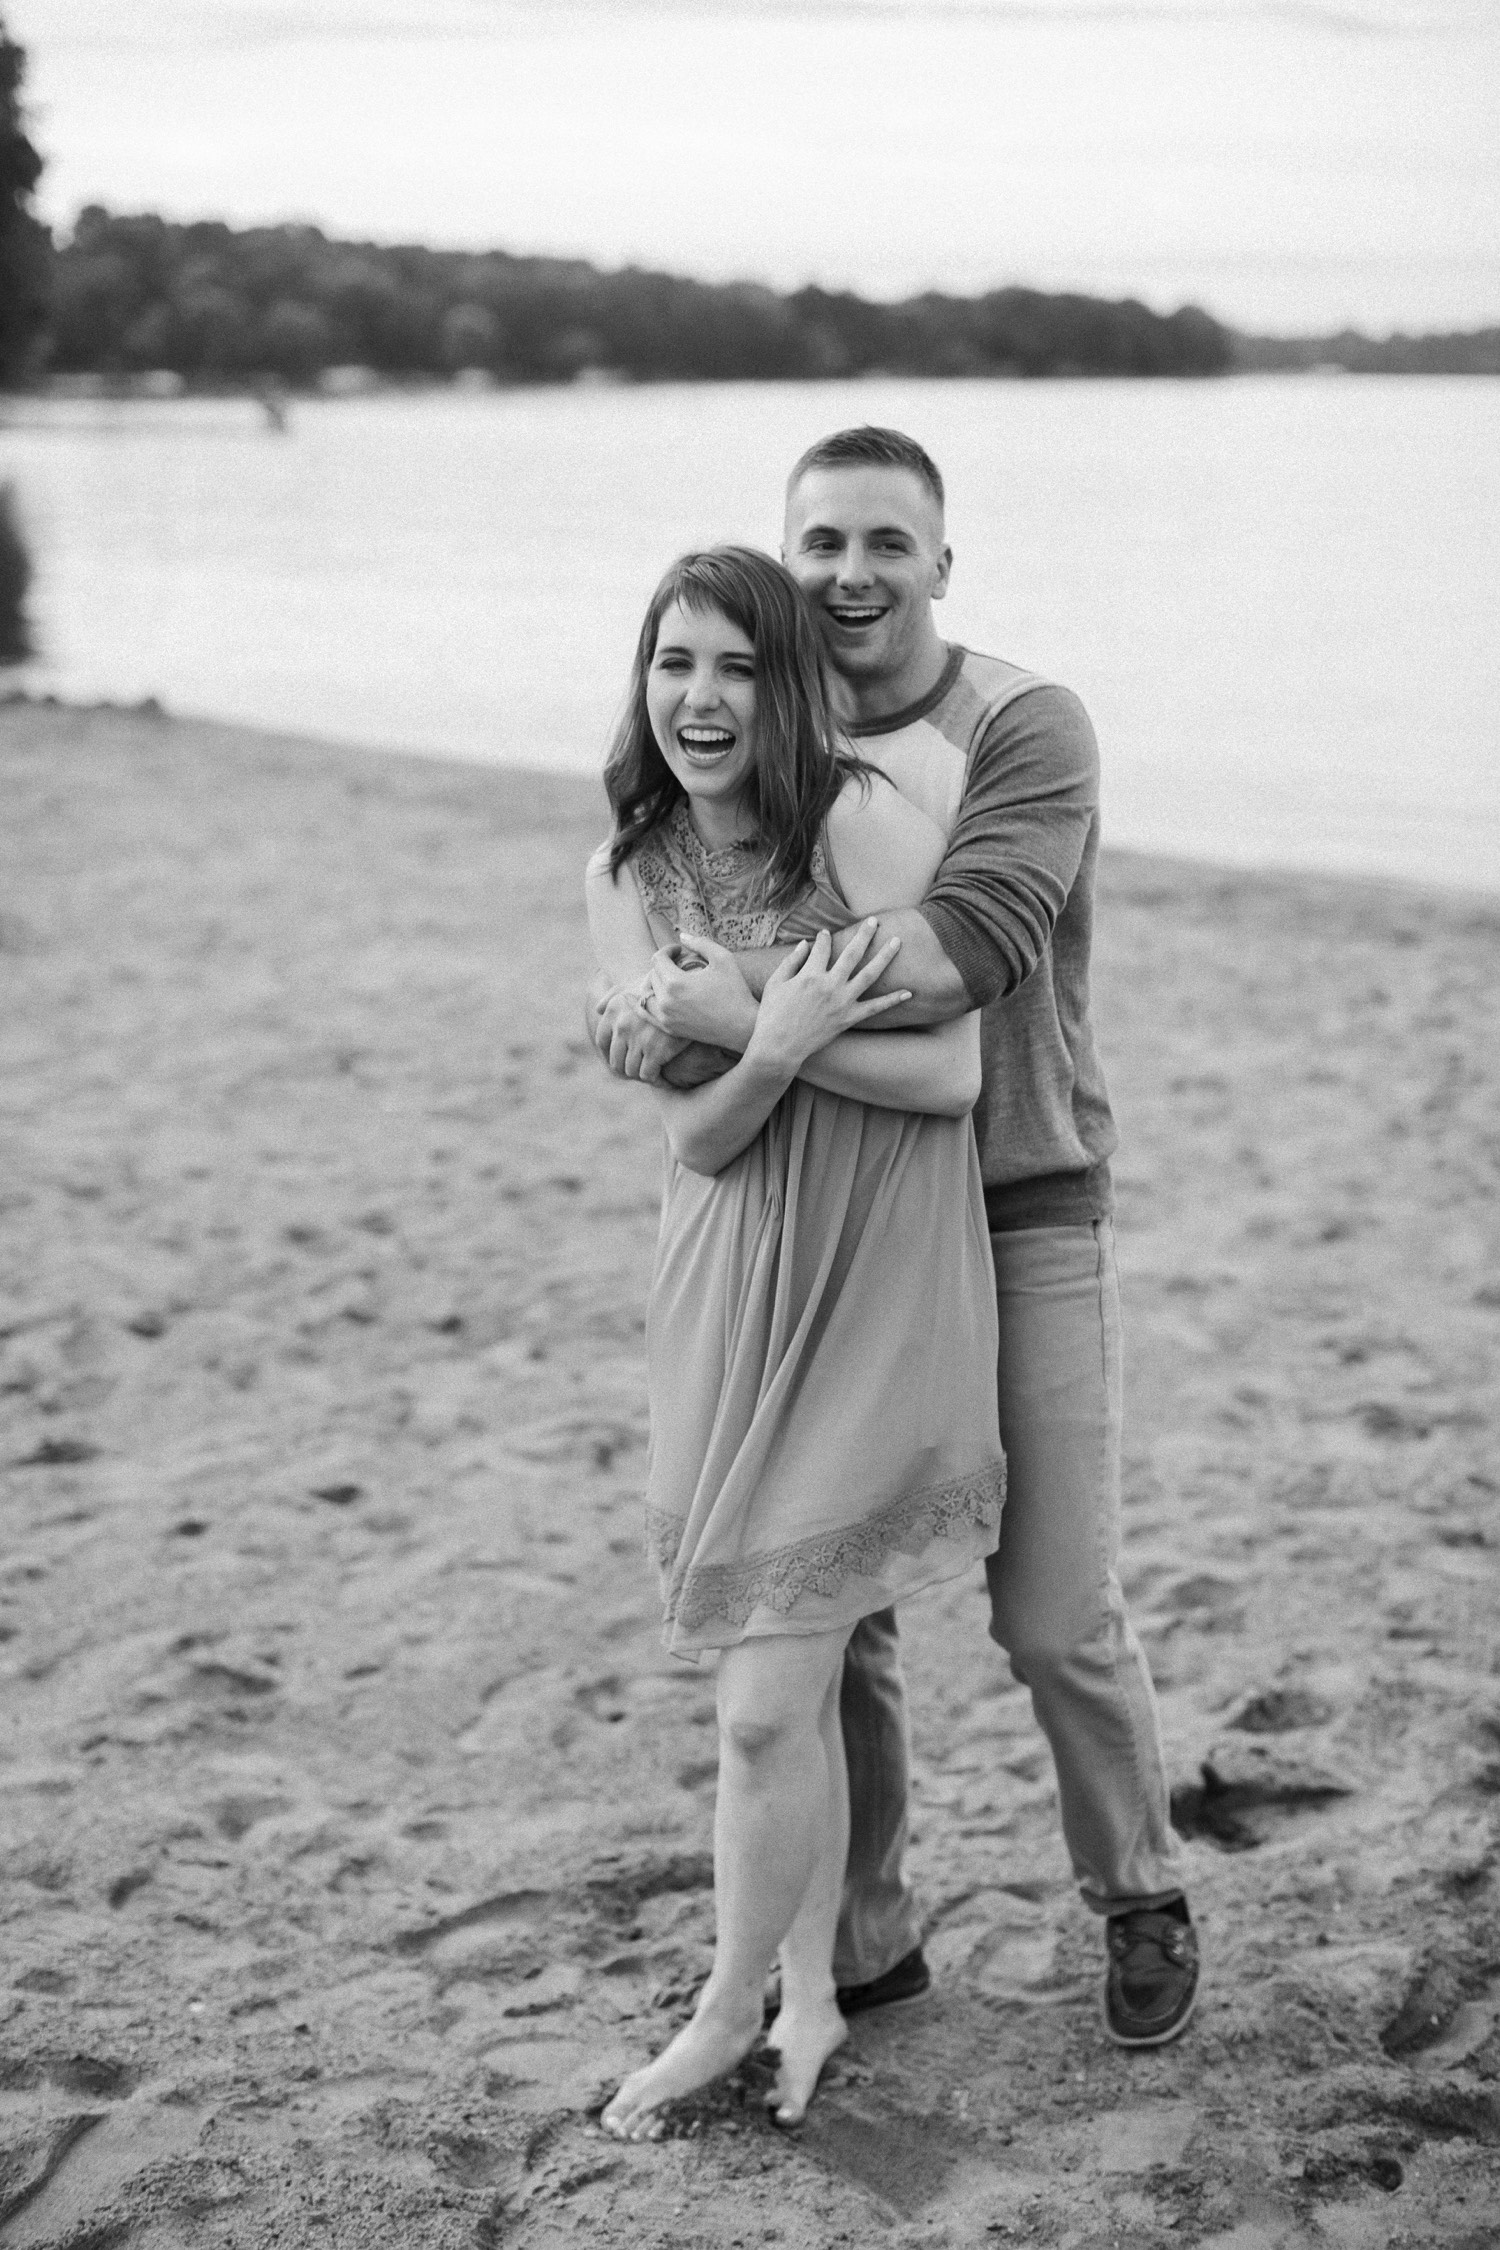 014_Abigail Berge Photography-Engagement-98.jpg